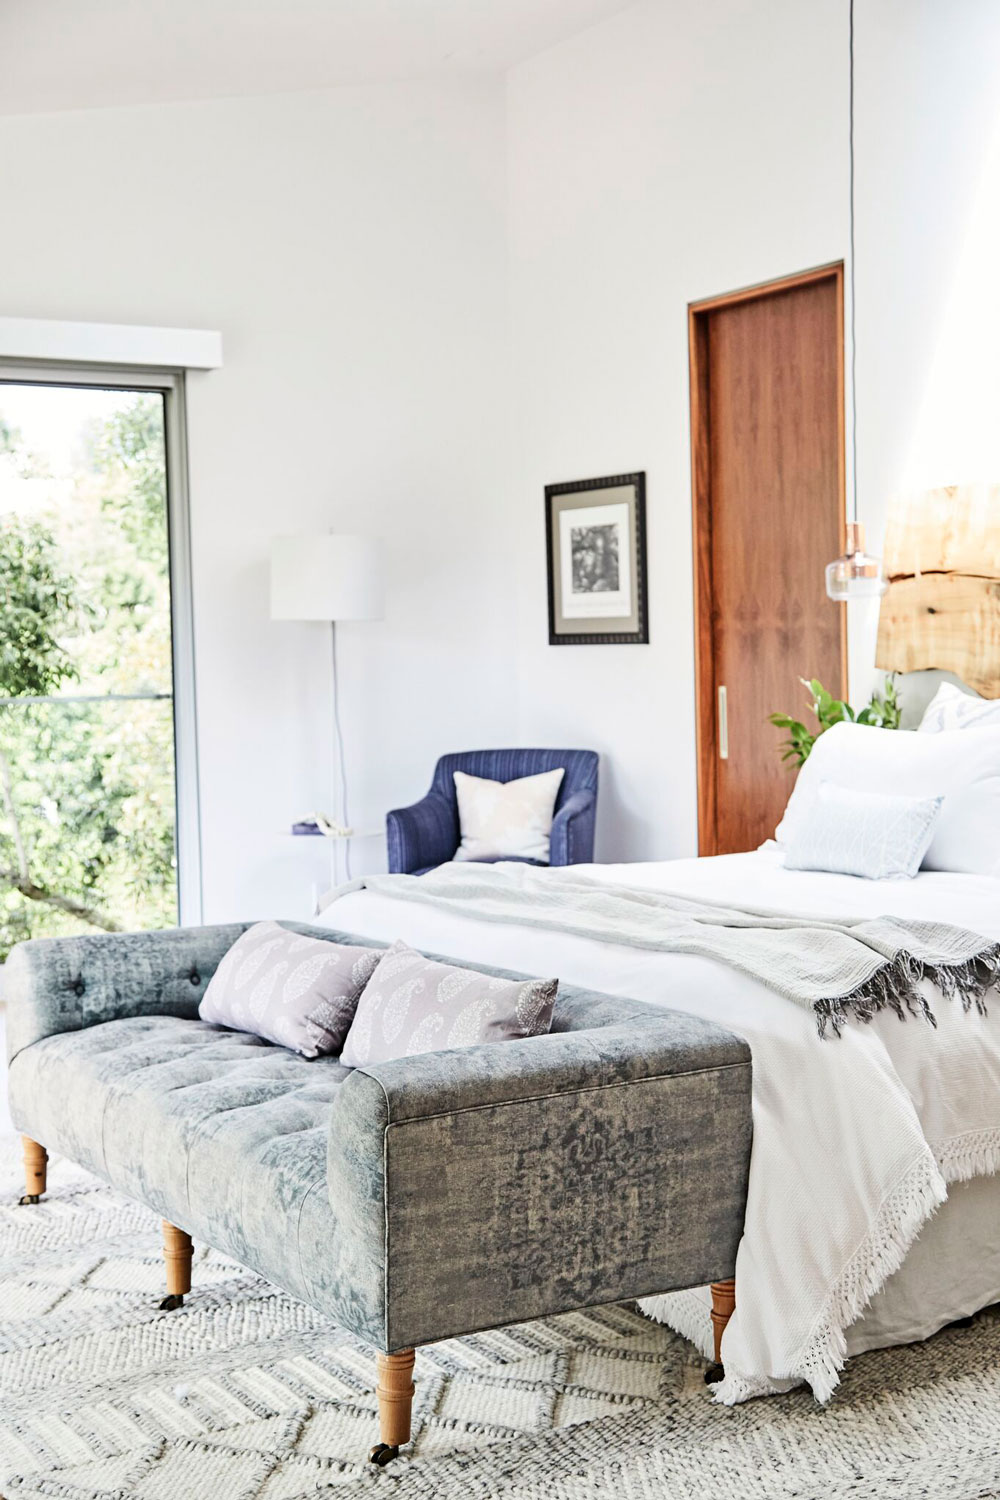 Serene was the order of the day for this master bedroom.